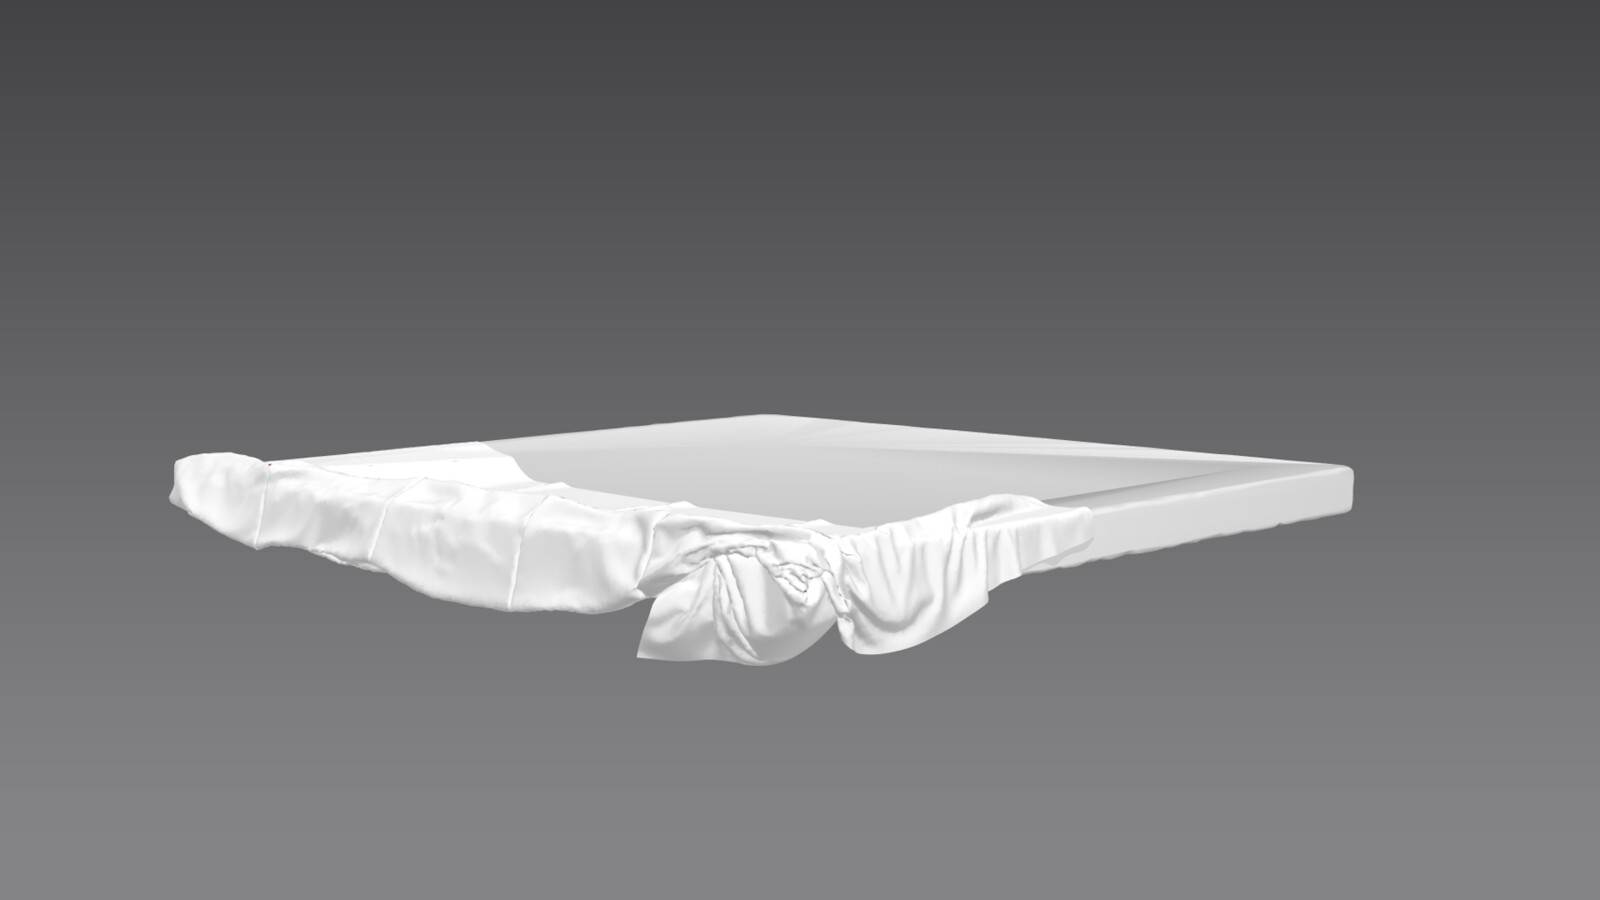 Both high and low poly ceiling rag created in Marvelous designer.